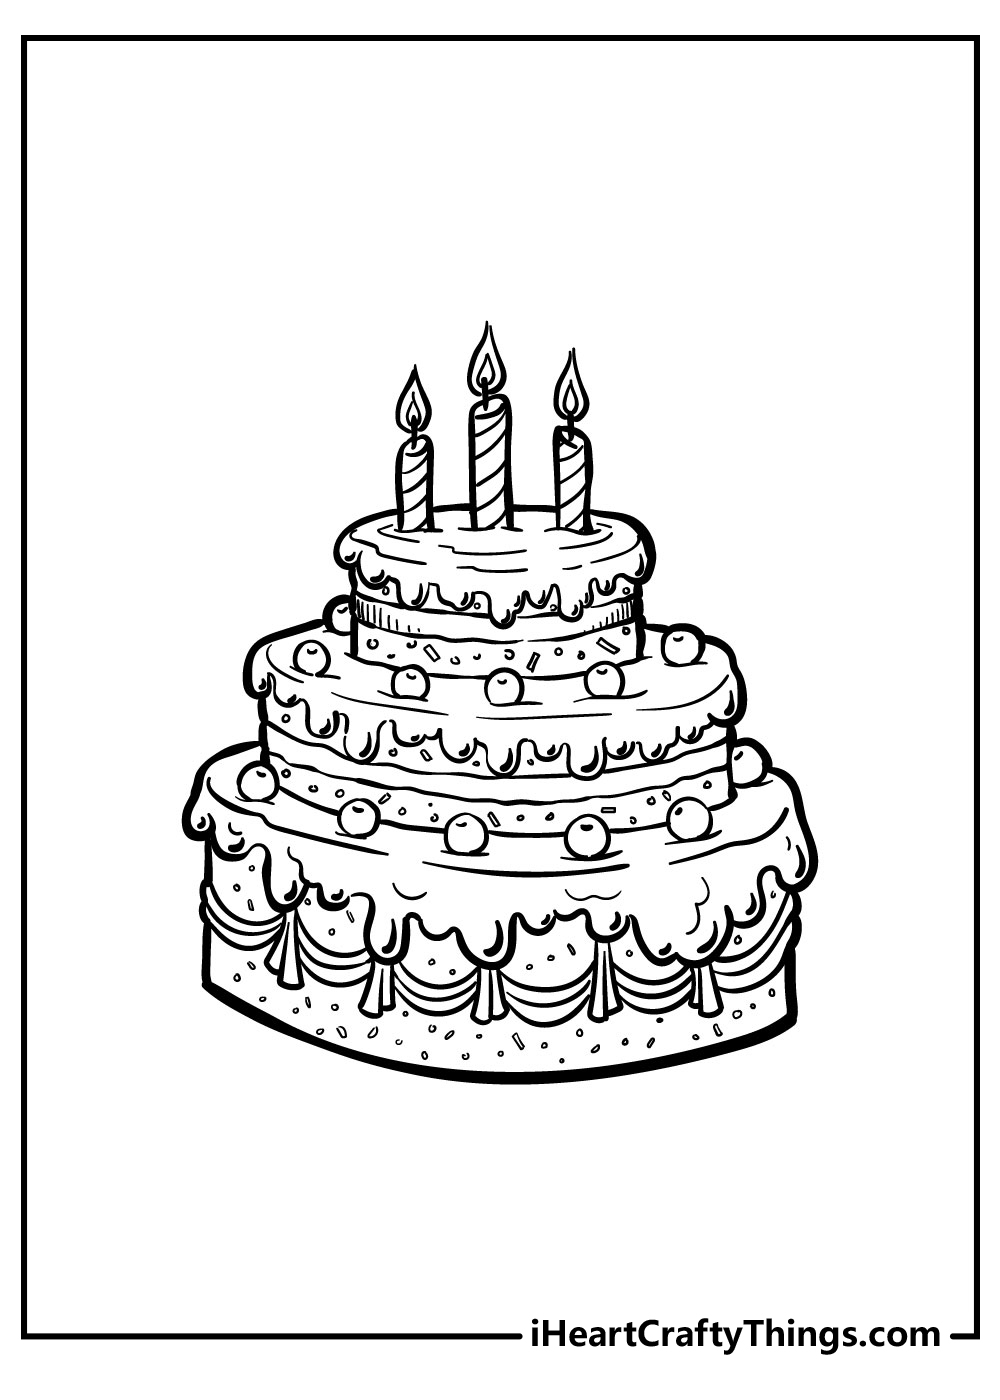 shopkins birthday cake coloring pages free download